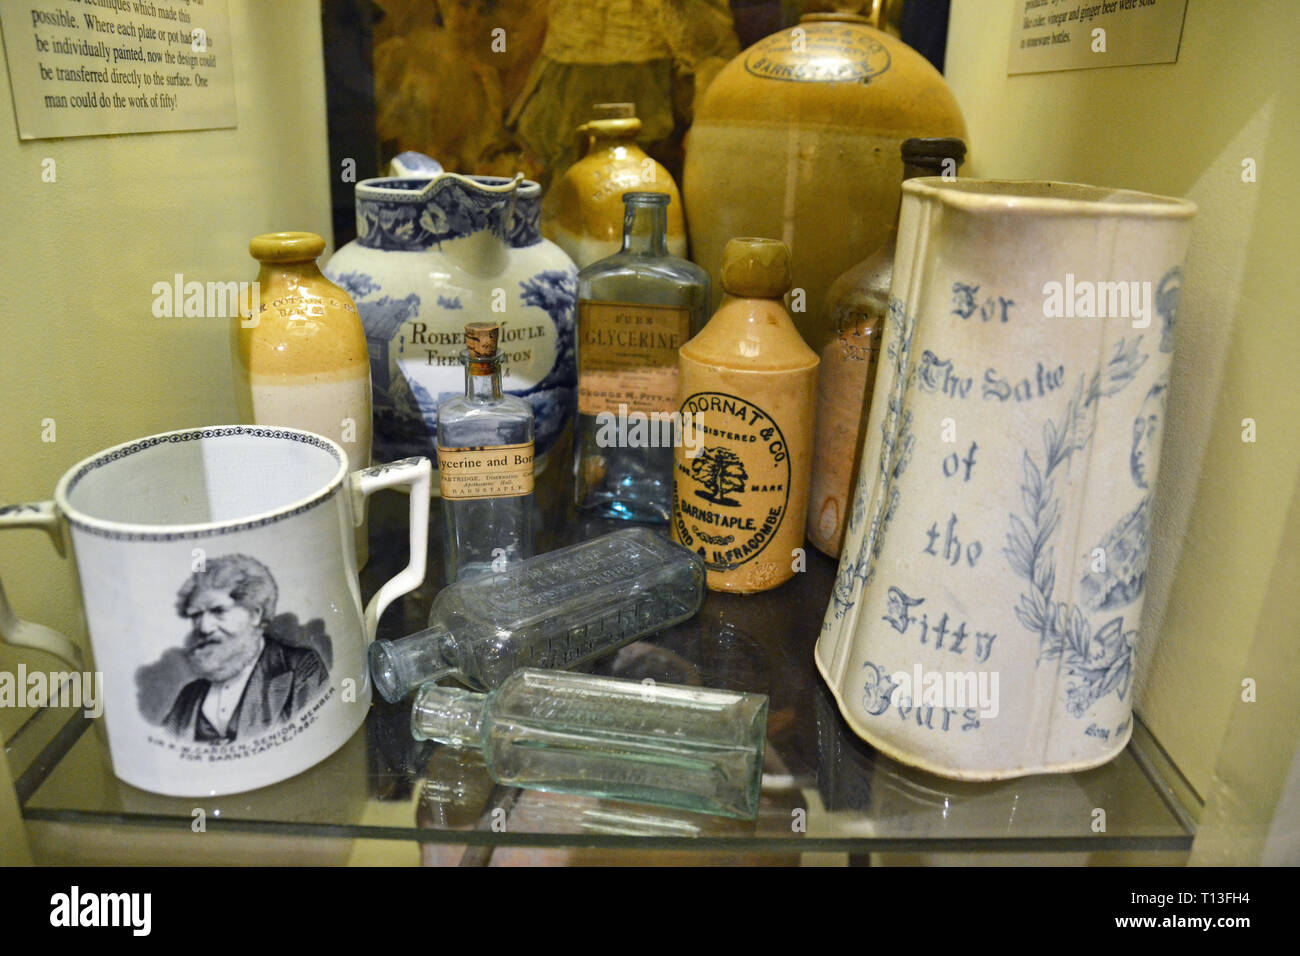 Local bottles, pottery, and ceramics in Barnstaple Museum